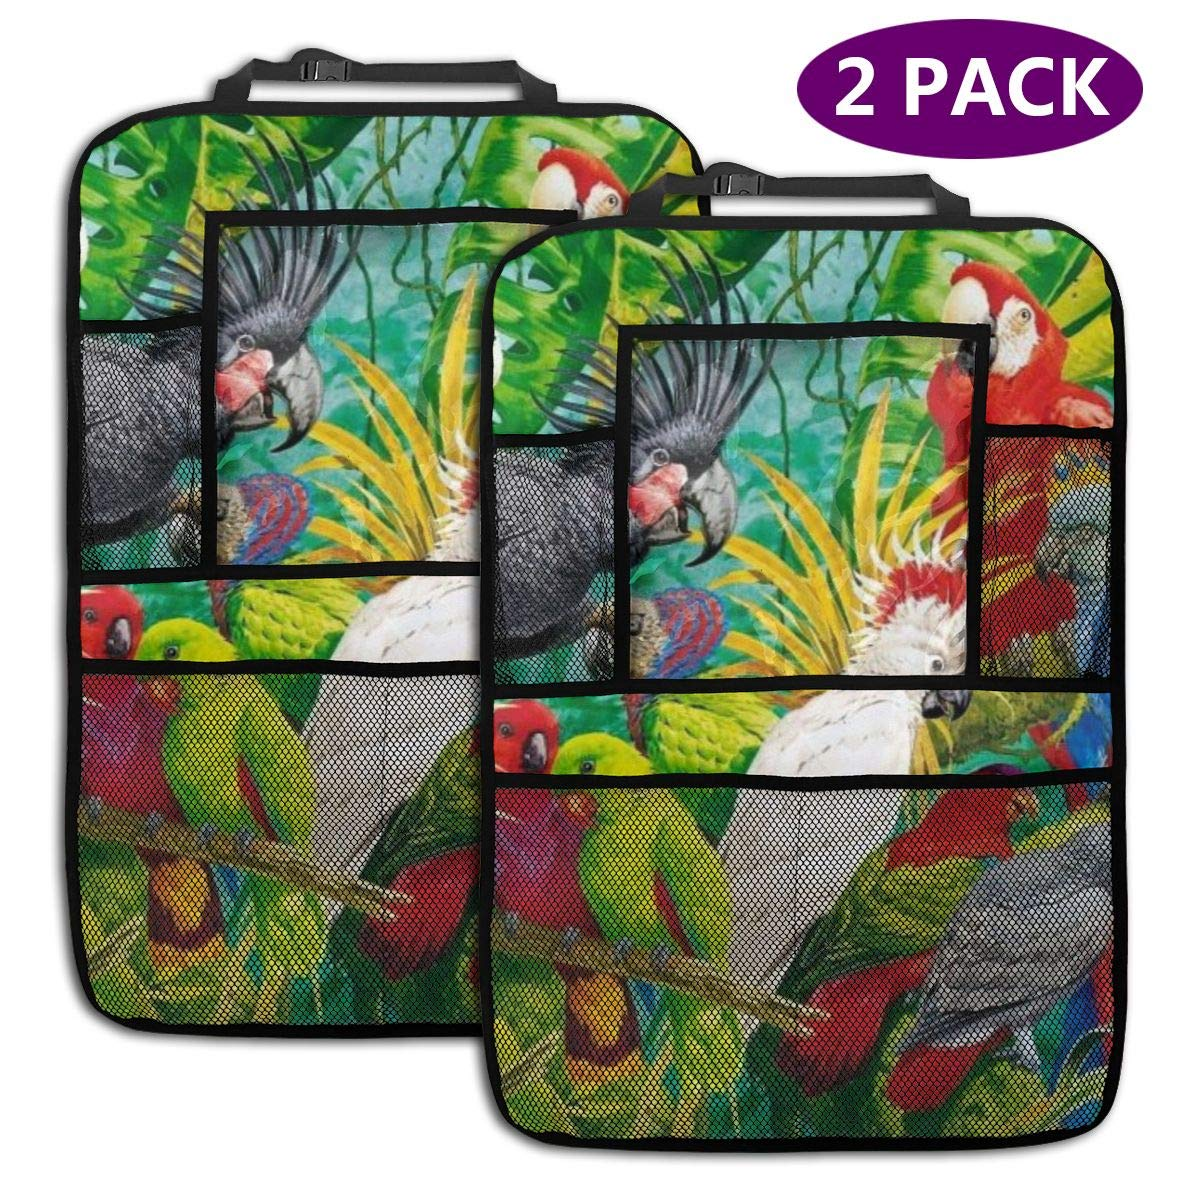 QF6FEICHAN Parrots in The Woods Car Seat Back Protectors with Storage Pockets Kick Mats Accessories for Kids and Toddlers by QF6FEICHAN